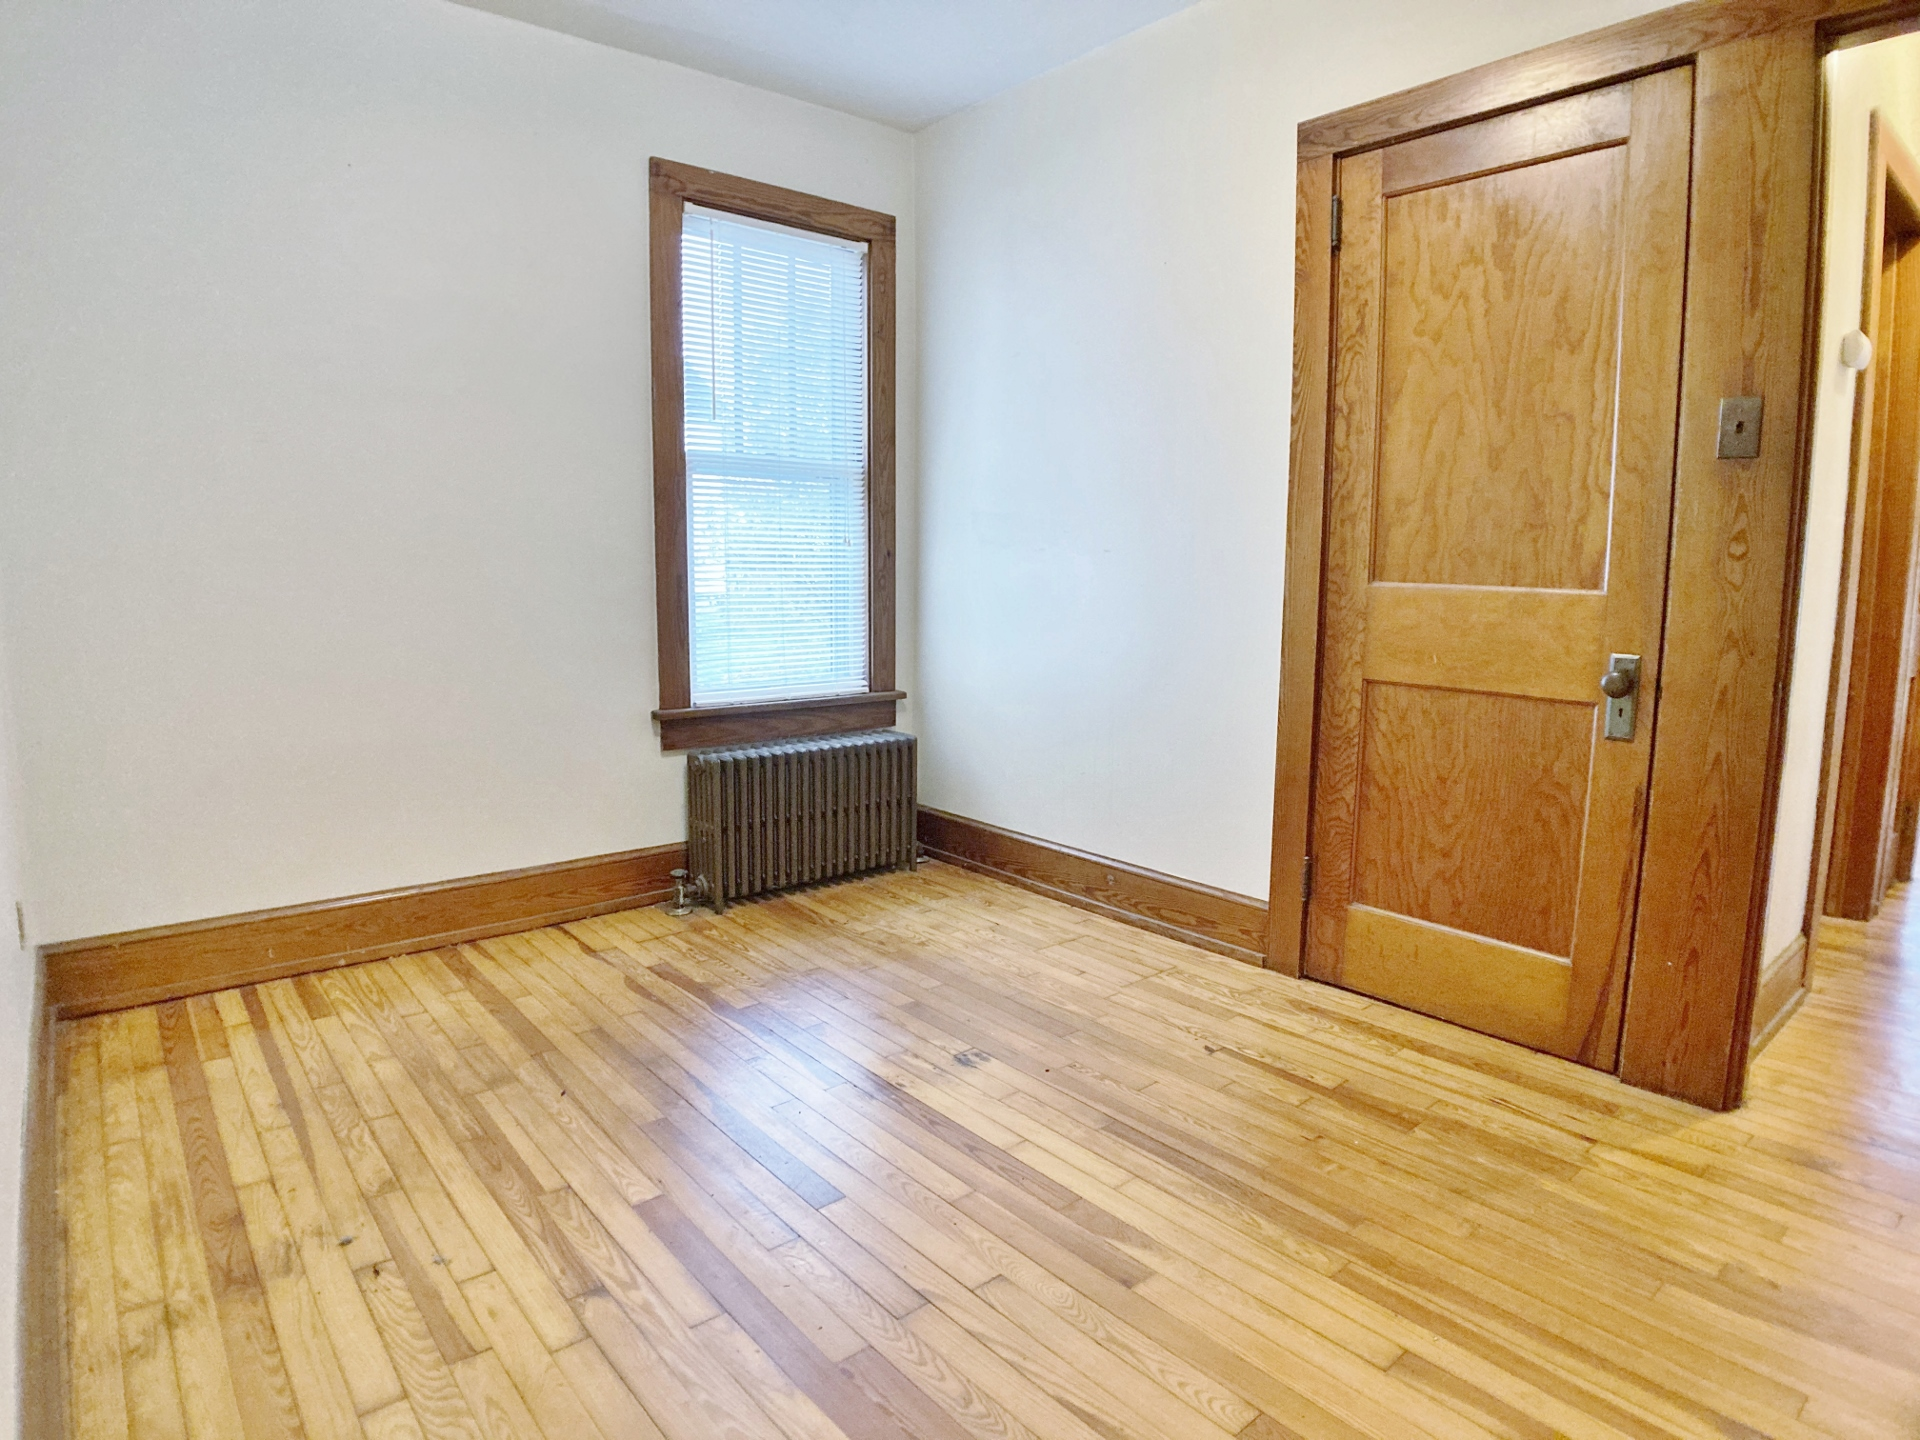 927 W. Beaver Avenue Bedroom #1